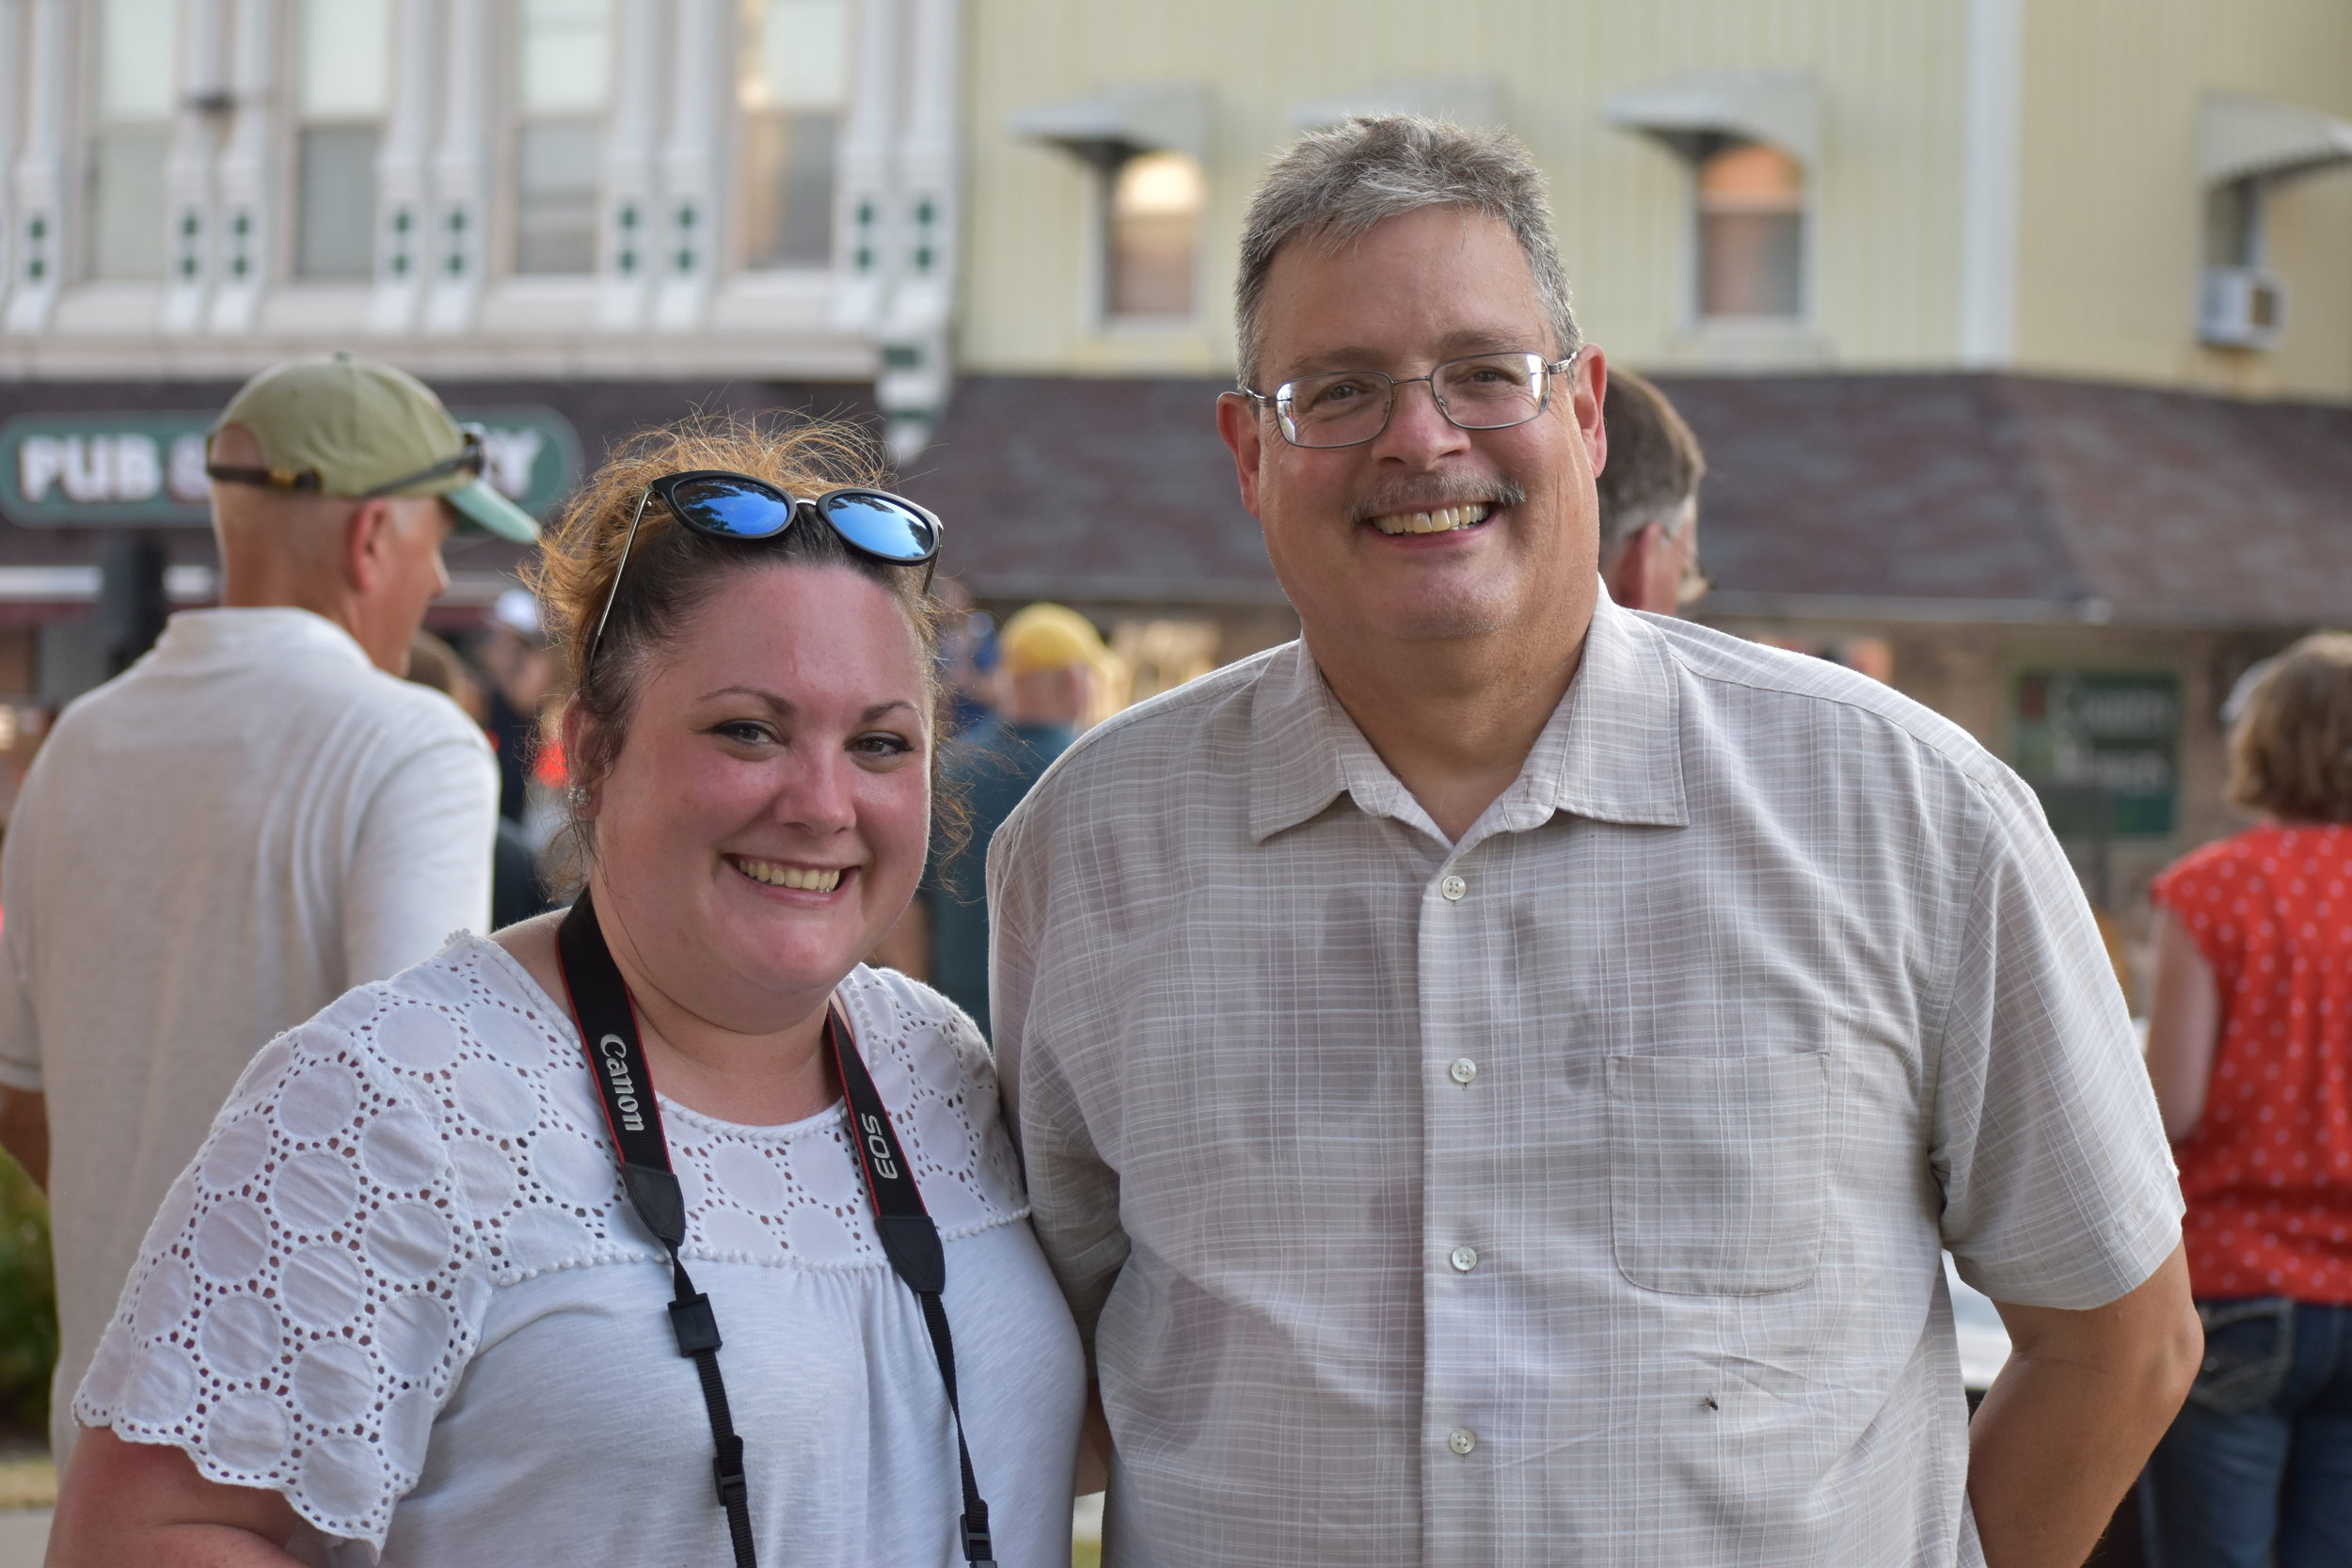 Lancaster Area Chamber of Commerce's Executive Director Heather Bontreger and Director Rick Sanson